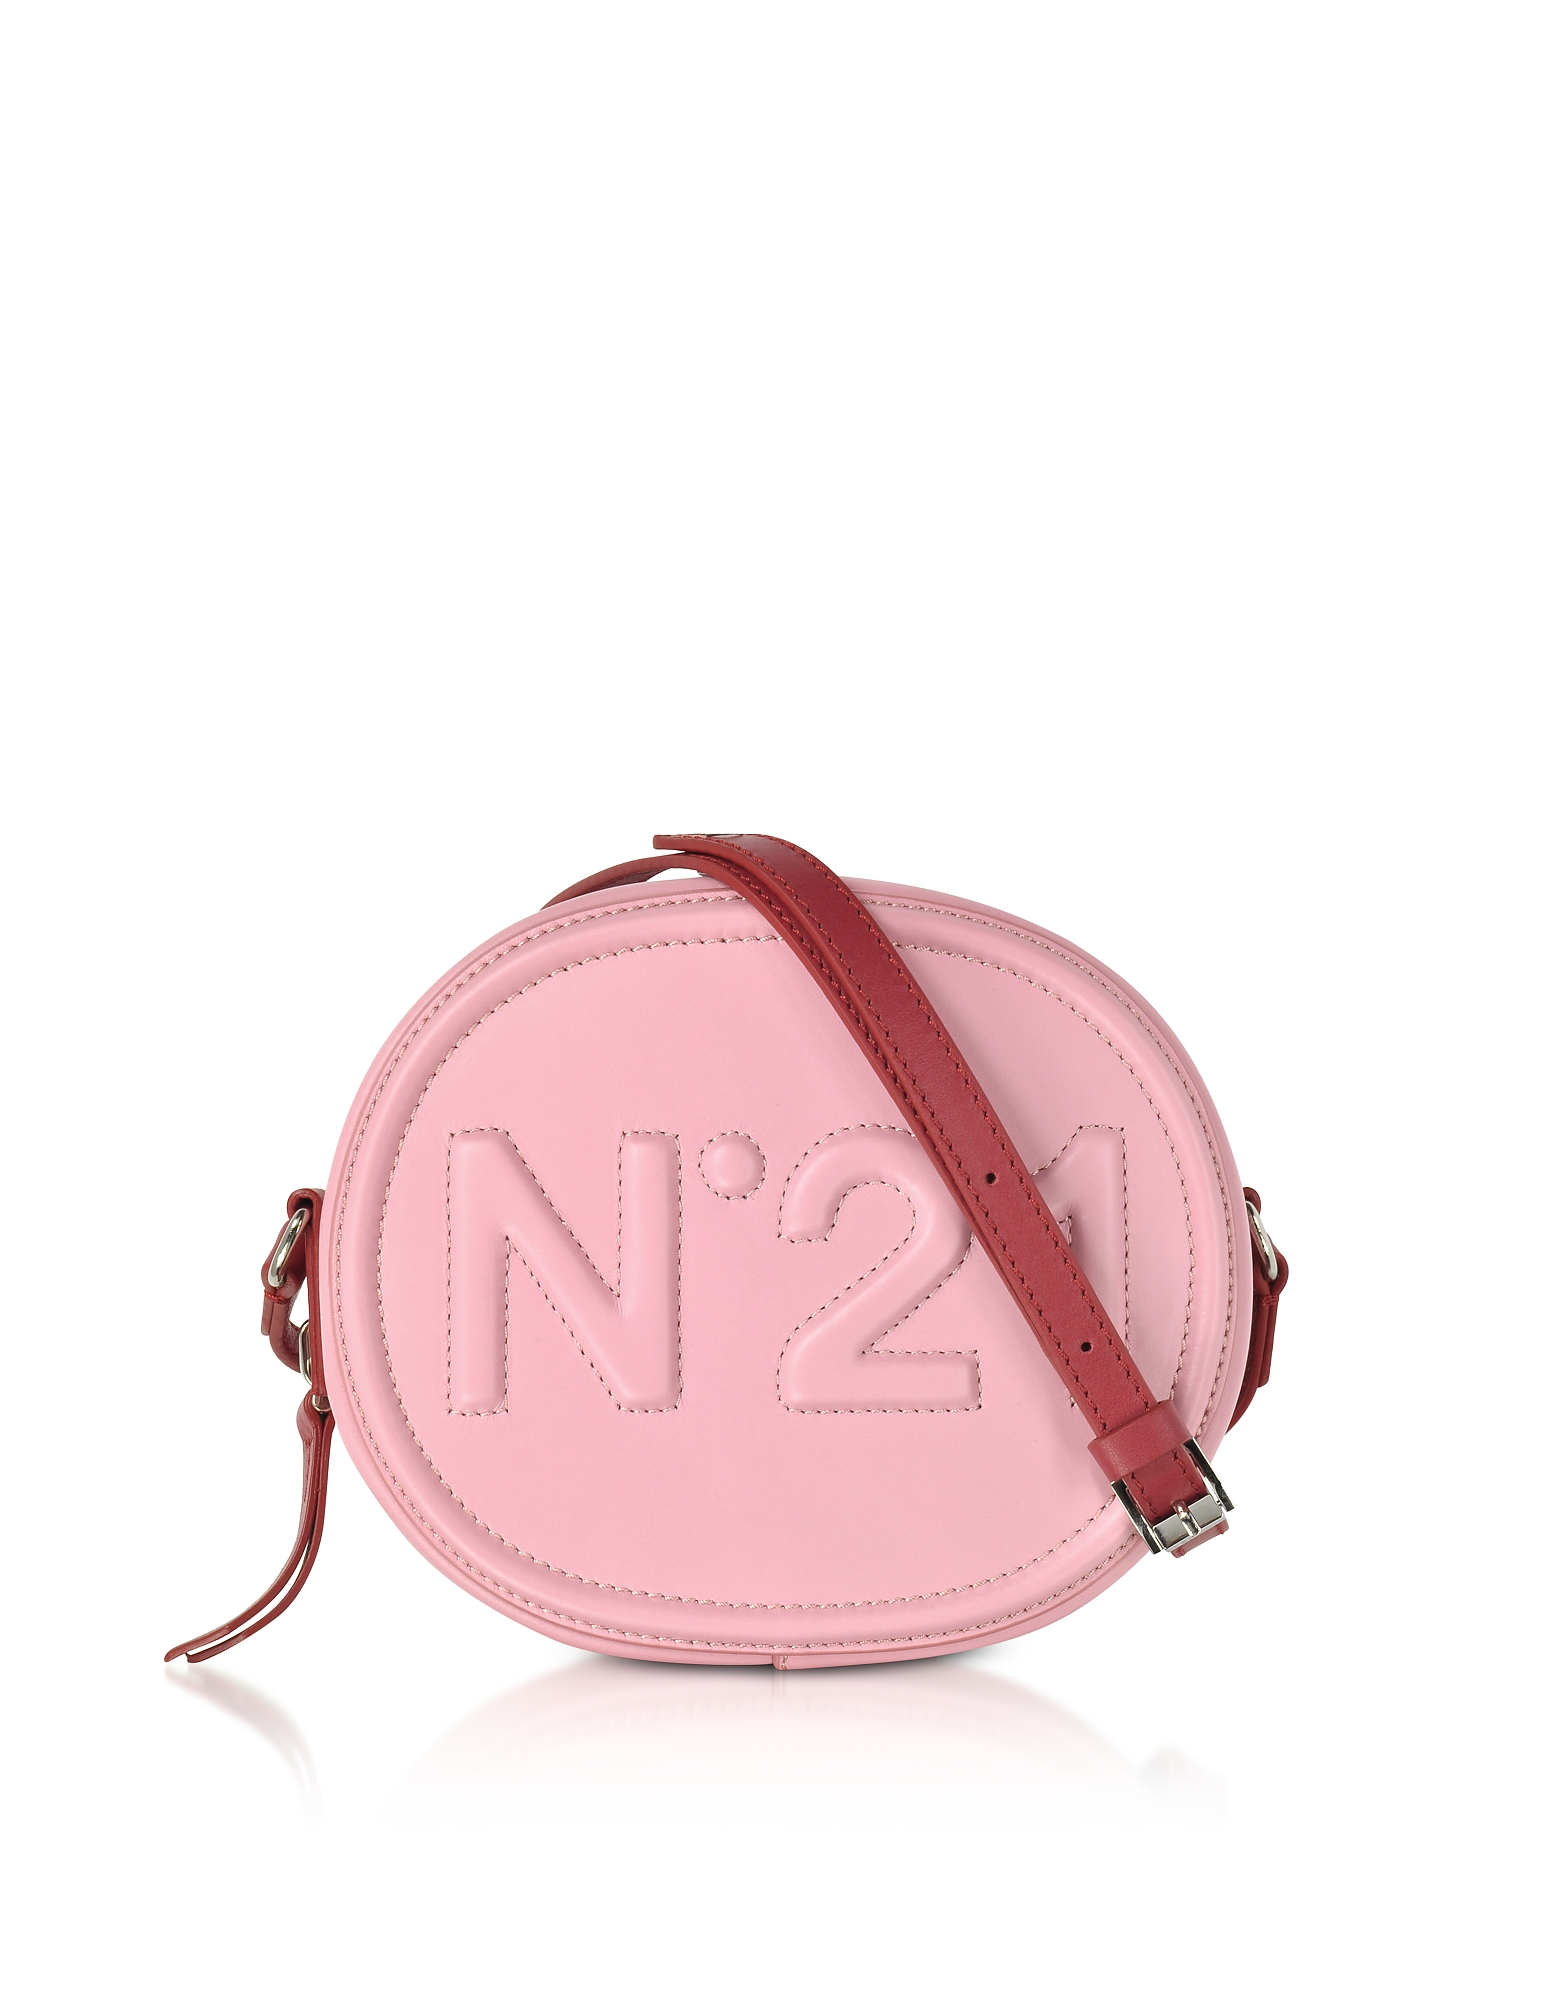 N°21 Handbags, Pink Leather Oval Crossbody Bag w/Embossed Logo